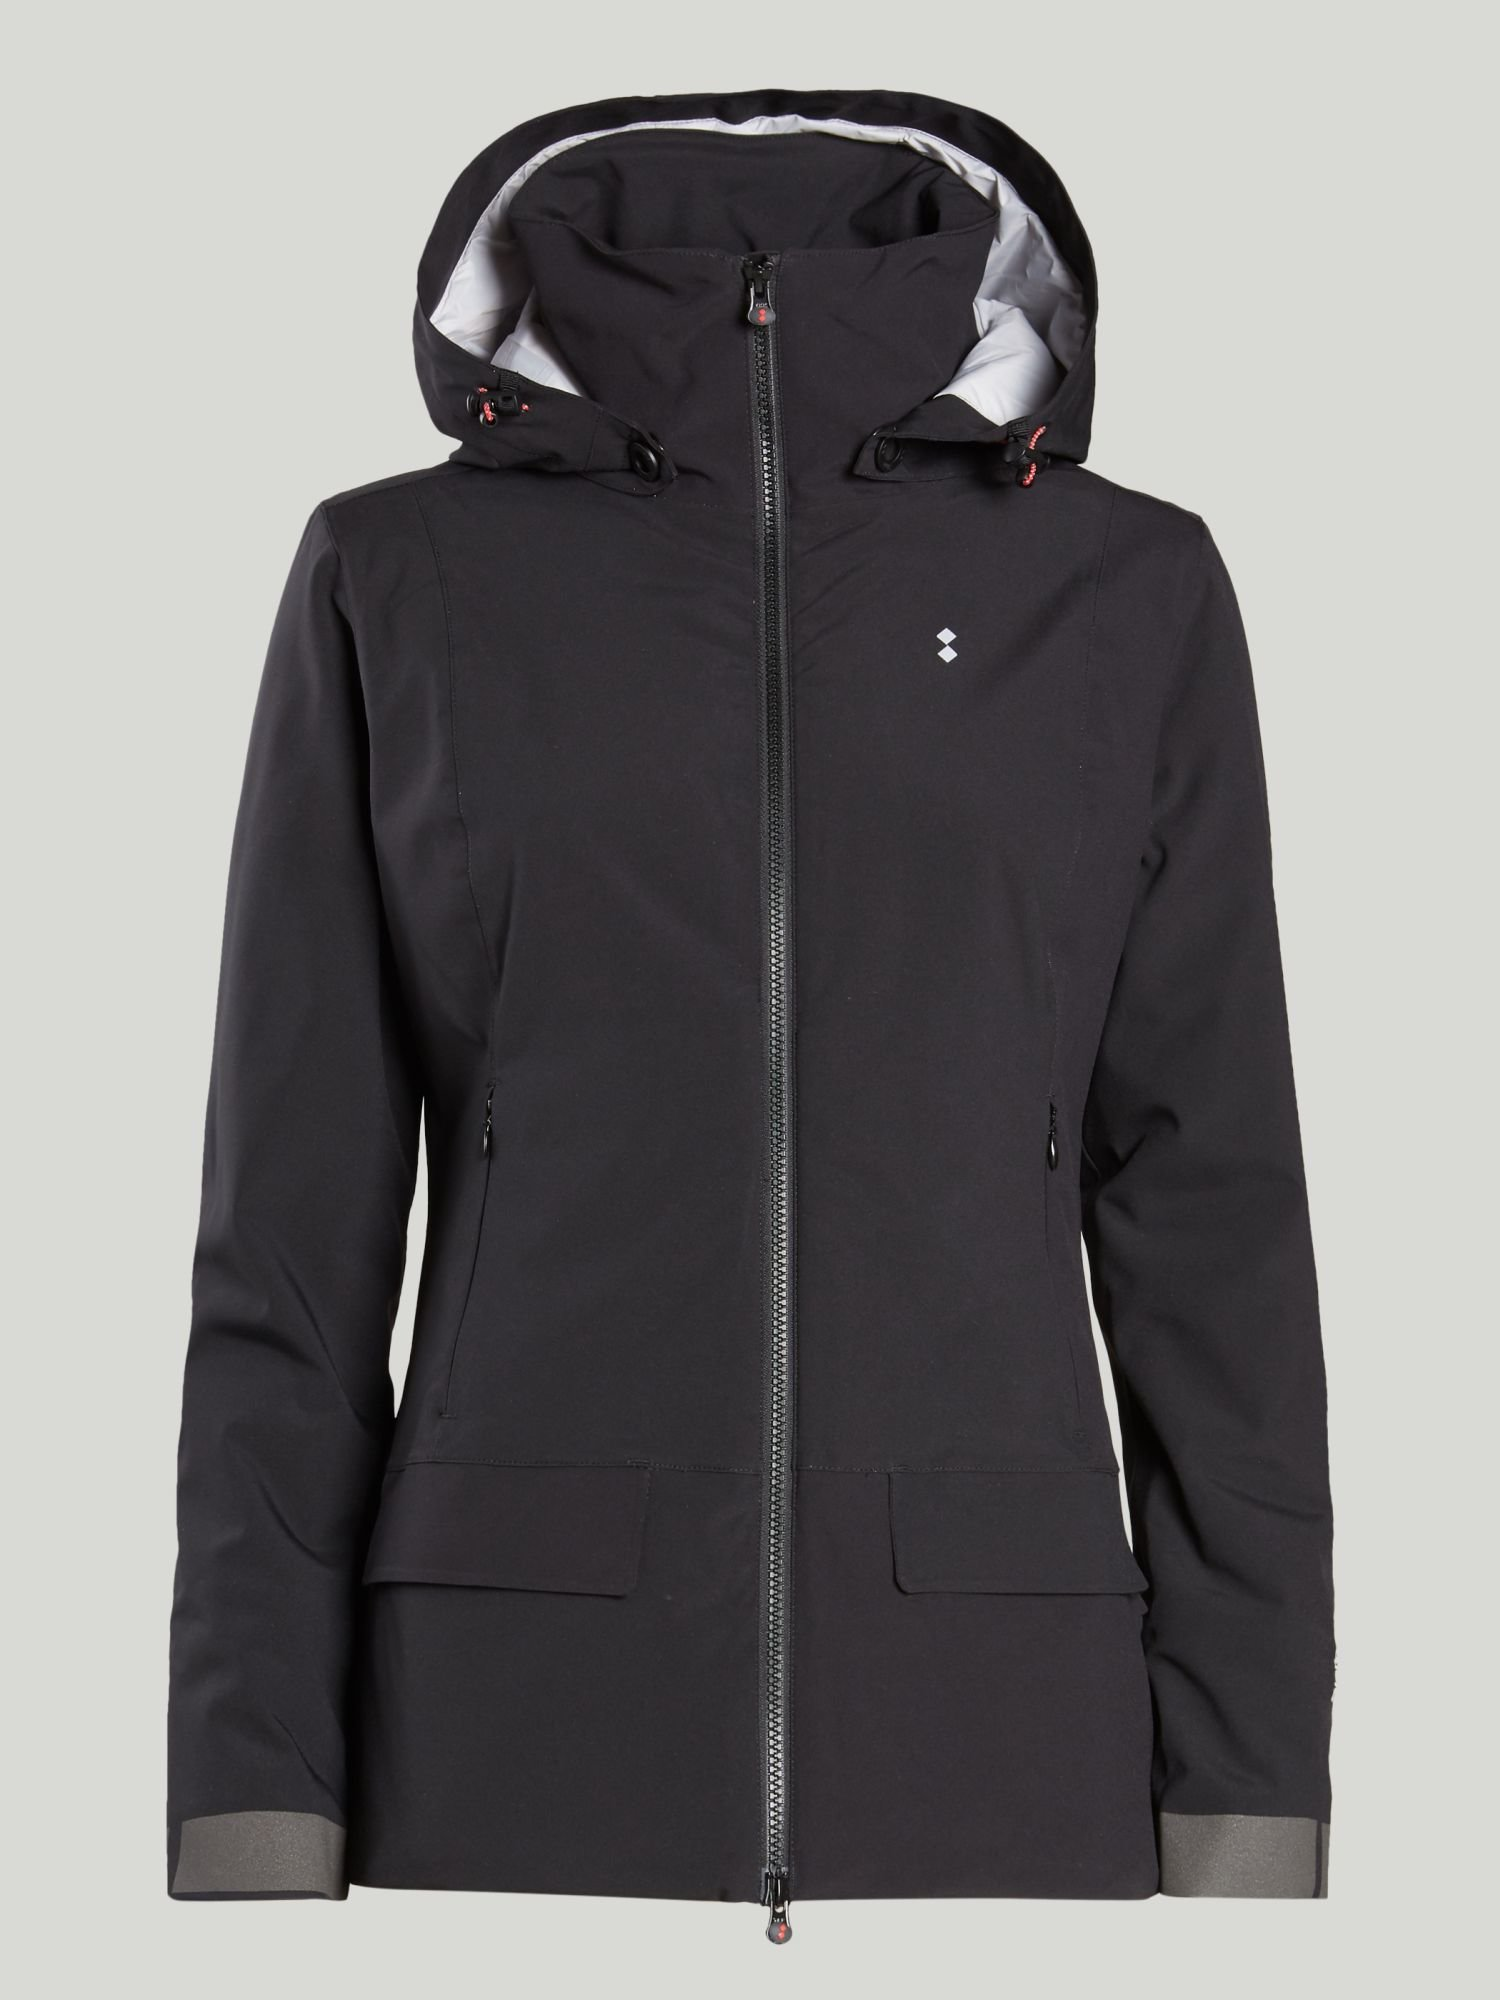 Hapuna Jacket - Black